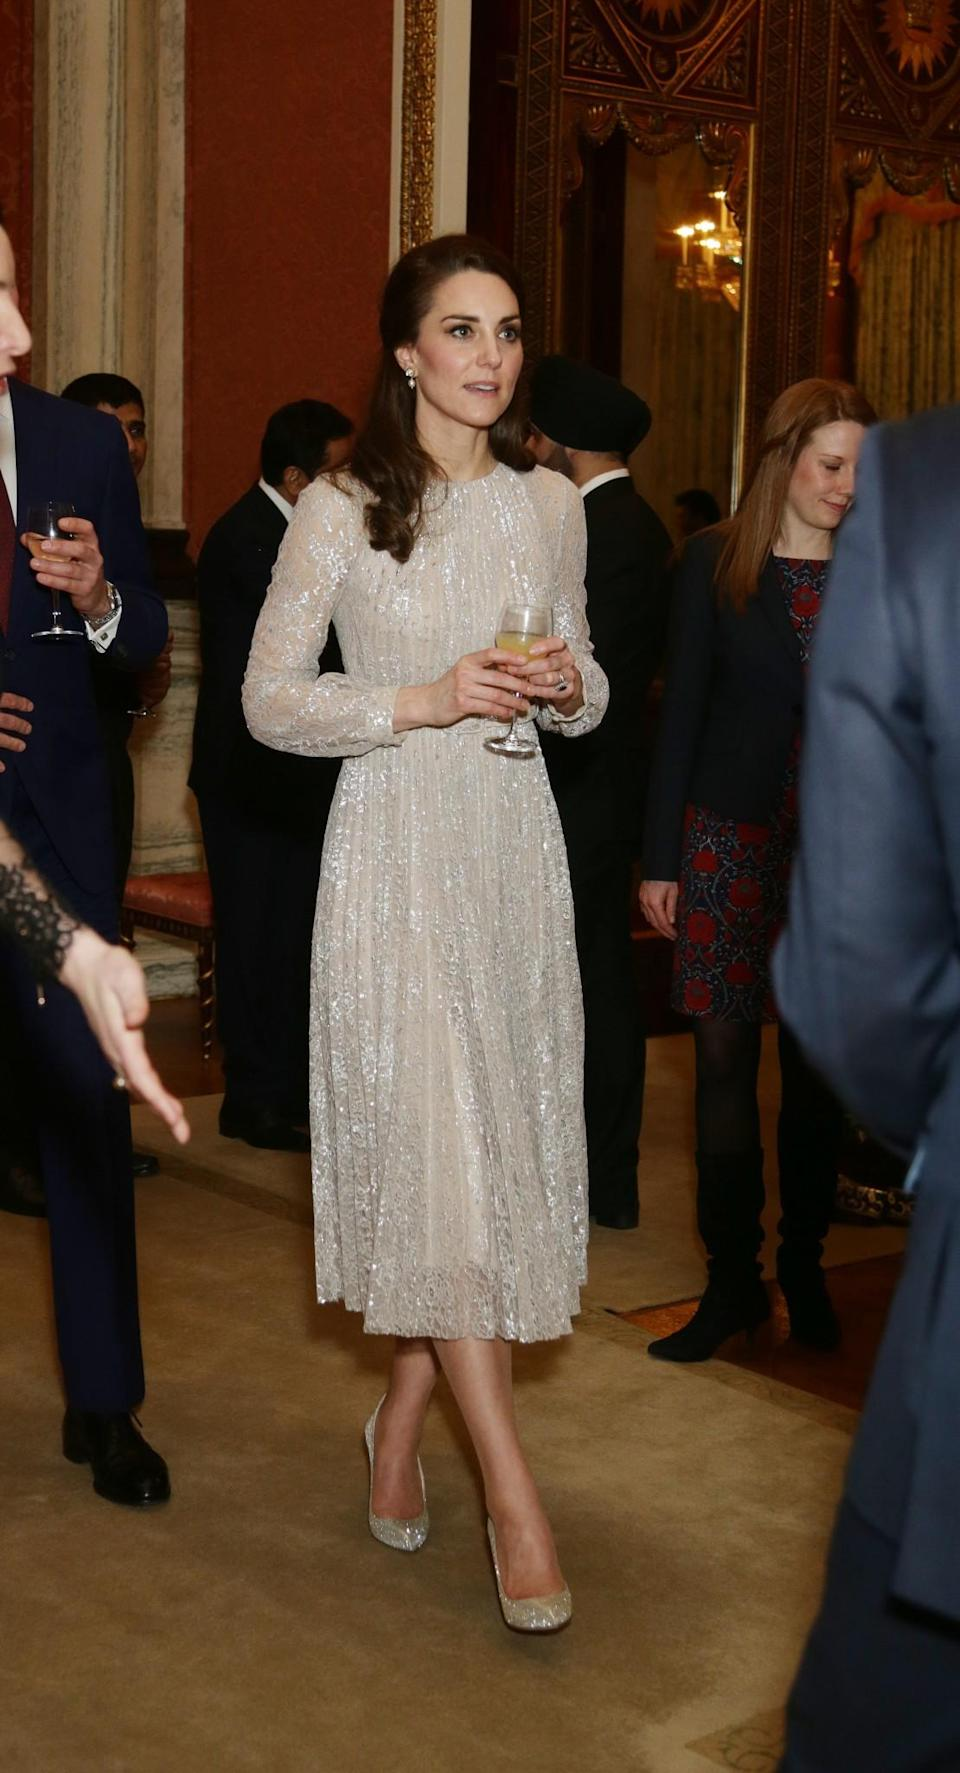 """<p>For a reception held at Buckingham Palace to celebrate the UK-India Year of Culture, Kate chose a look by her favourite British designer, Erdem. The cocktail dress was made from a metallic lace and featured semi-sheer sleeves as well as a pleated skirt. It sold out straight after the Duchess wore it but luckily, her glittering Oscar de la Renta heels can <a rel=""""nofollow noopener"""" href=""""http://www.oscardelarenta.com/new-arrivals/platinum-lame-cabrina-pumps"""" target=""""_blank"""" data-ylk=""""slk:still be yours. [Photo: Getty]"""" class=""""link rapid-noclick-resp""""><span>still be yours.<br><em>[Photo: Getty]</em></span></a> </p>"""